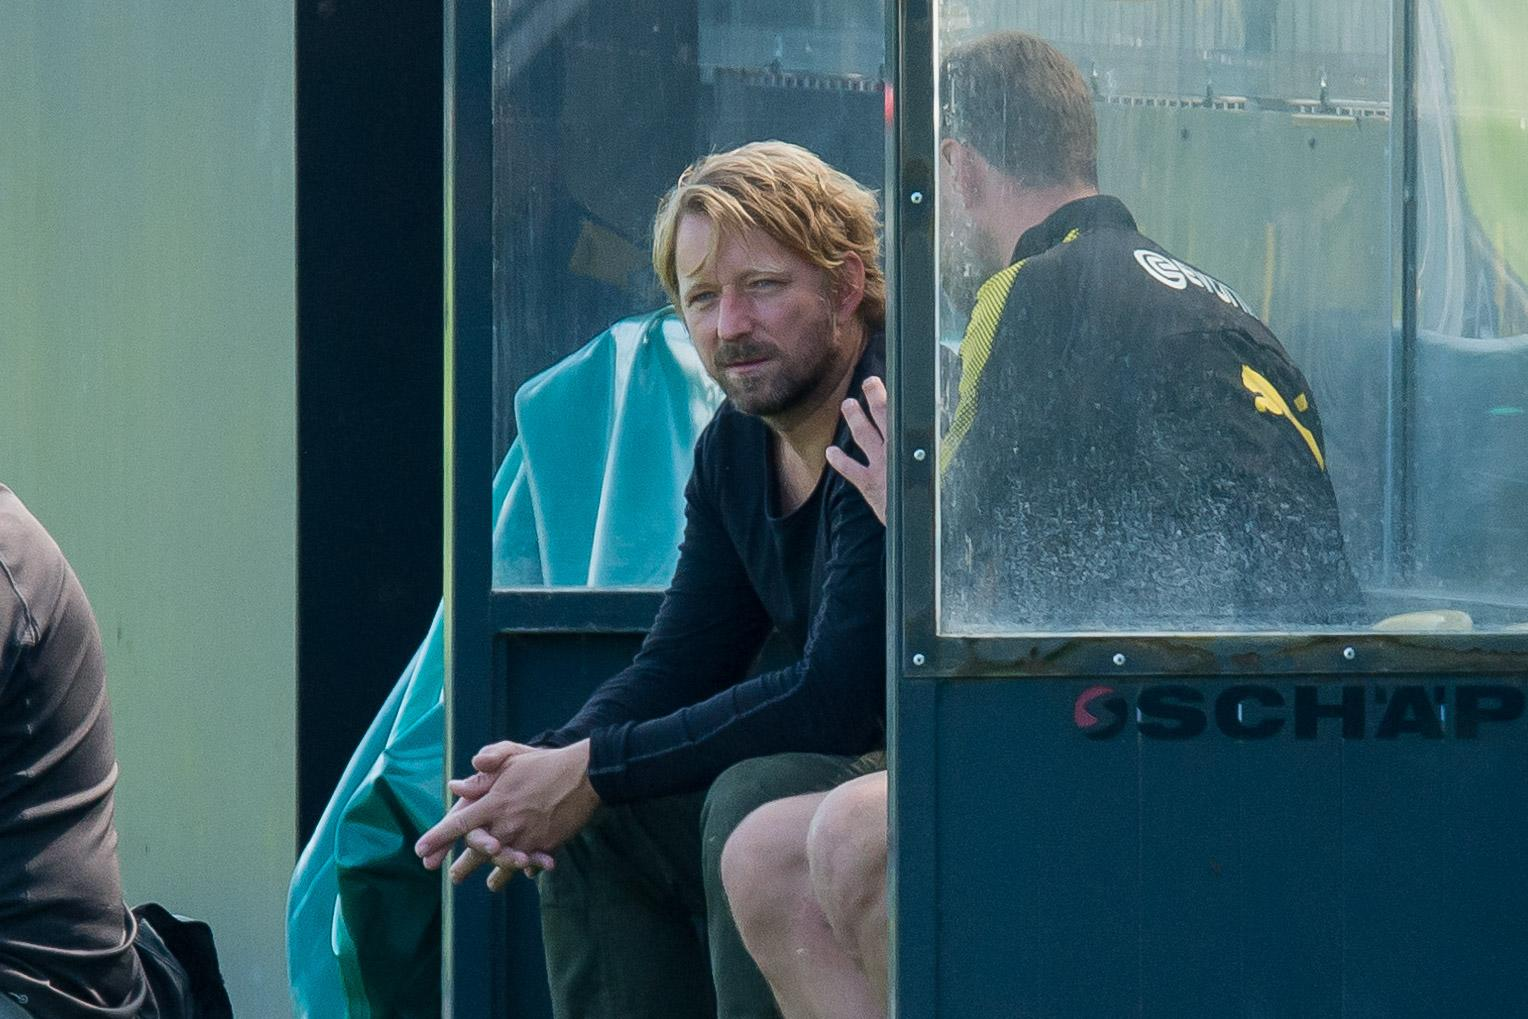 Known as 'Diamond Eye', Mislintat is credited with the finds of Robert Lewandowski and Ousmane Dembele